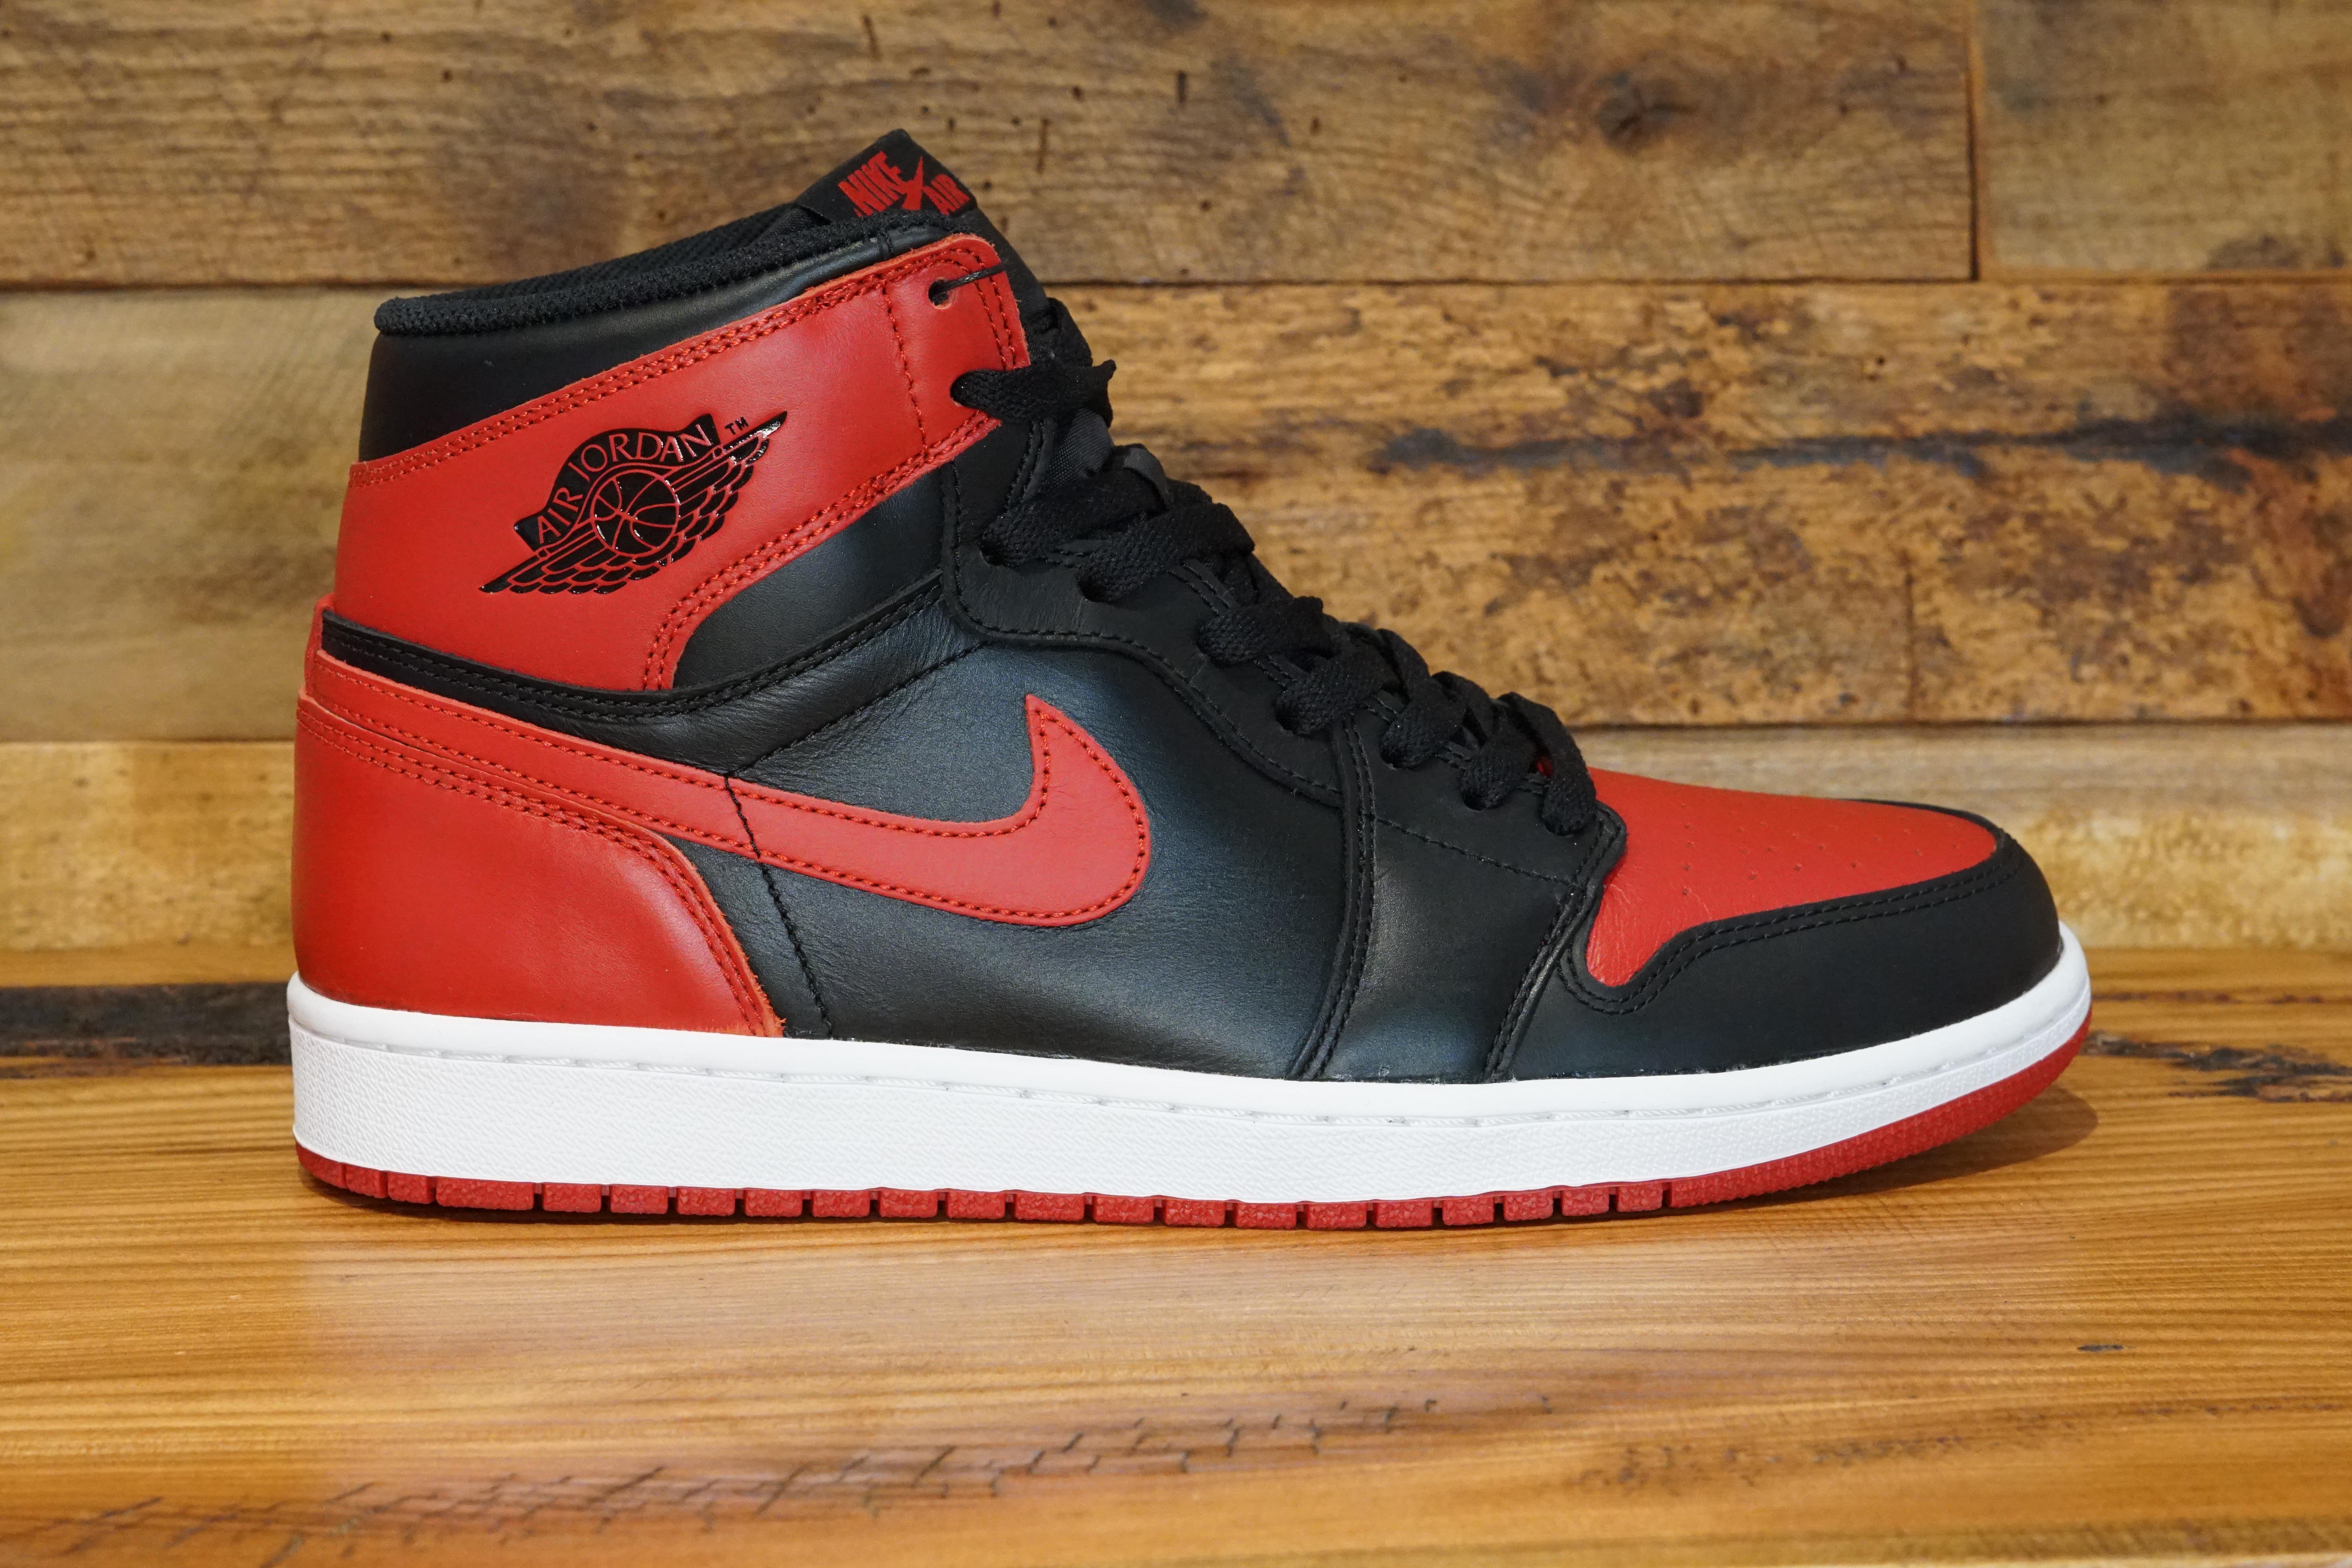 2e9363b9c59f ... 2013 New Original Box Size 13 (2-33). Air-Jordan-1-Retro-High-OG-BRED- Size-